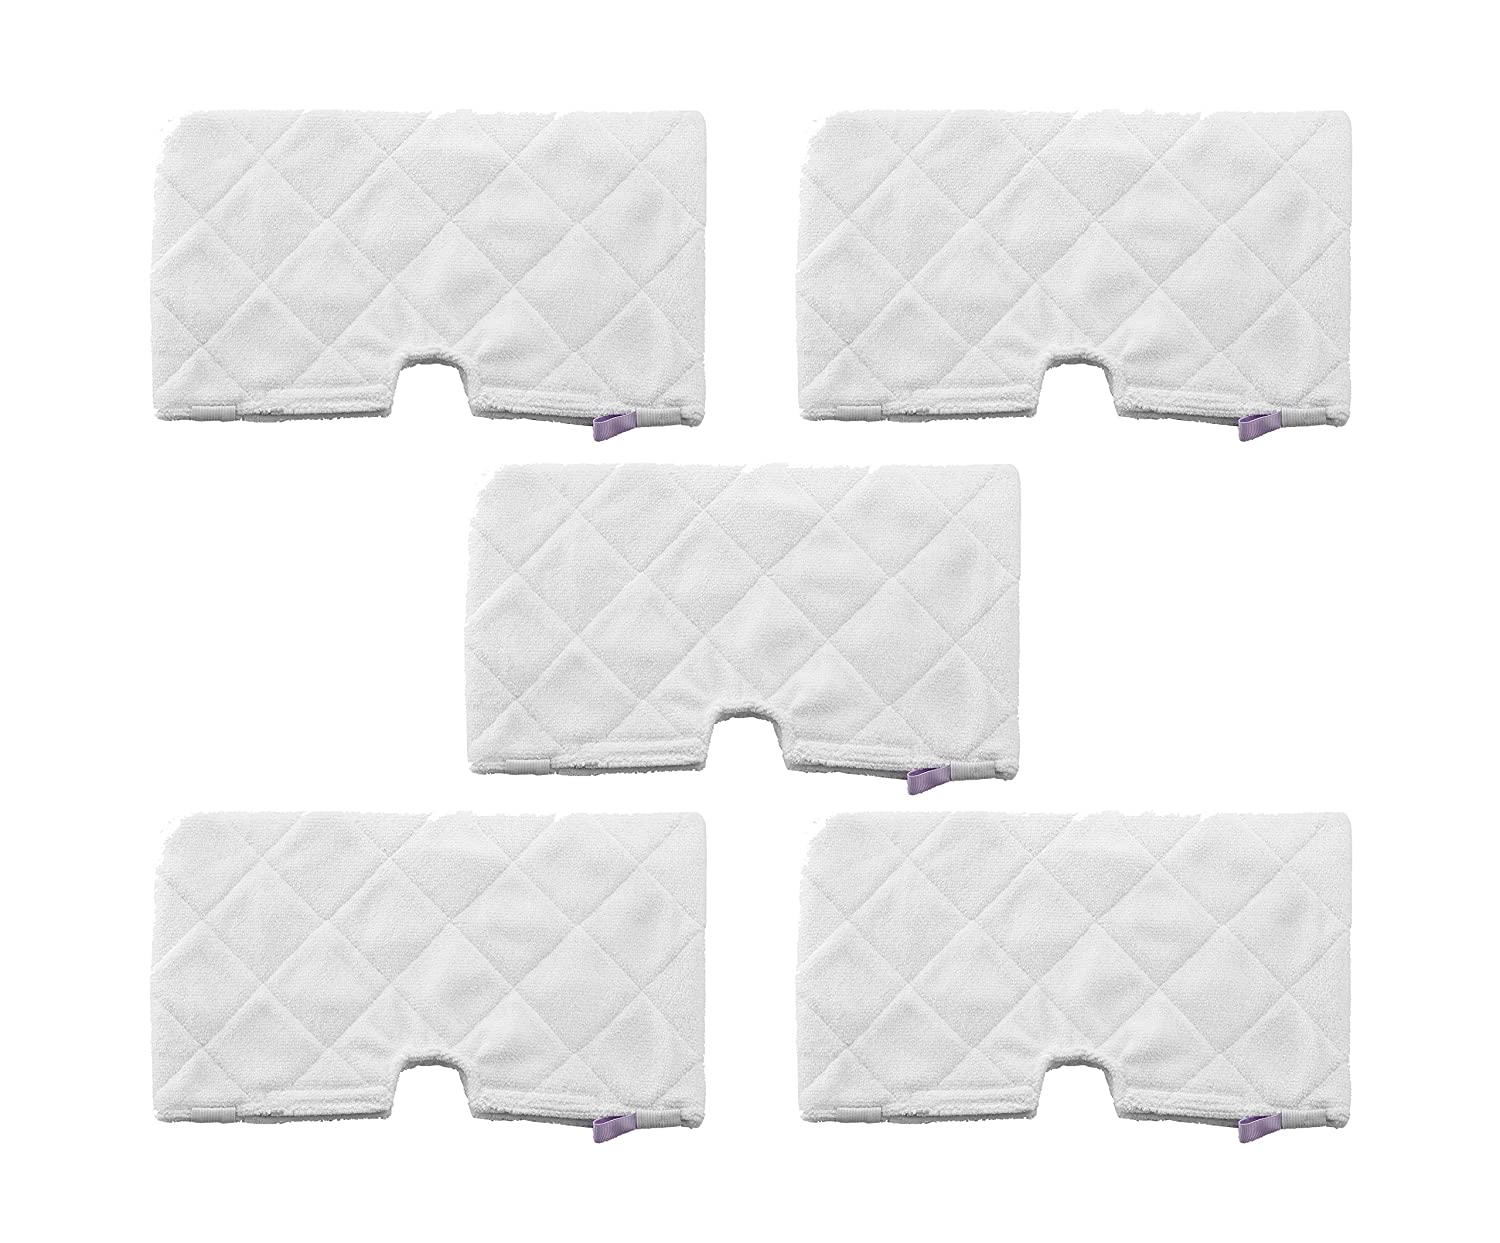 EZCARRIER Washable Steam Mop Pads Replacement for Shark Steam Pocket S3501 S3601D S3550 S3801 S3901 S4601 SE450 S4701 S4701D (Pack of 5)